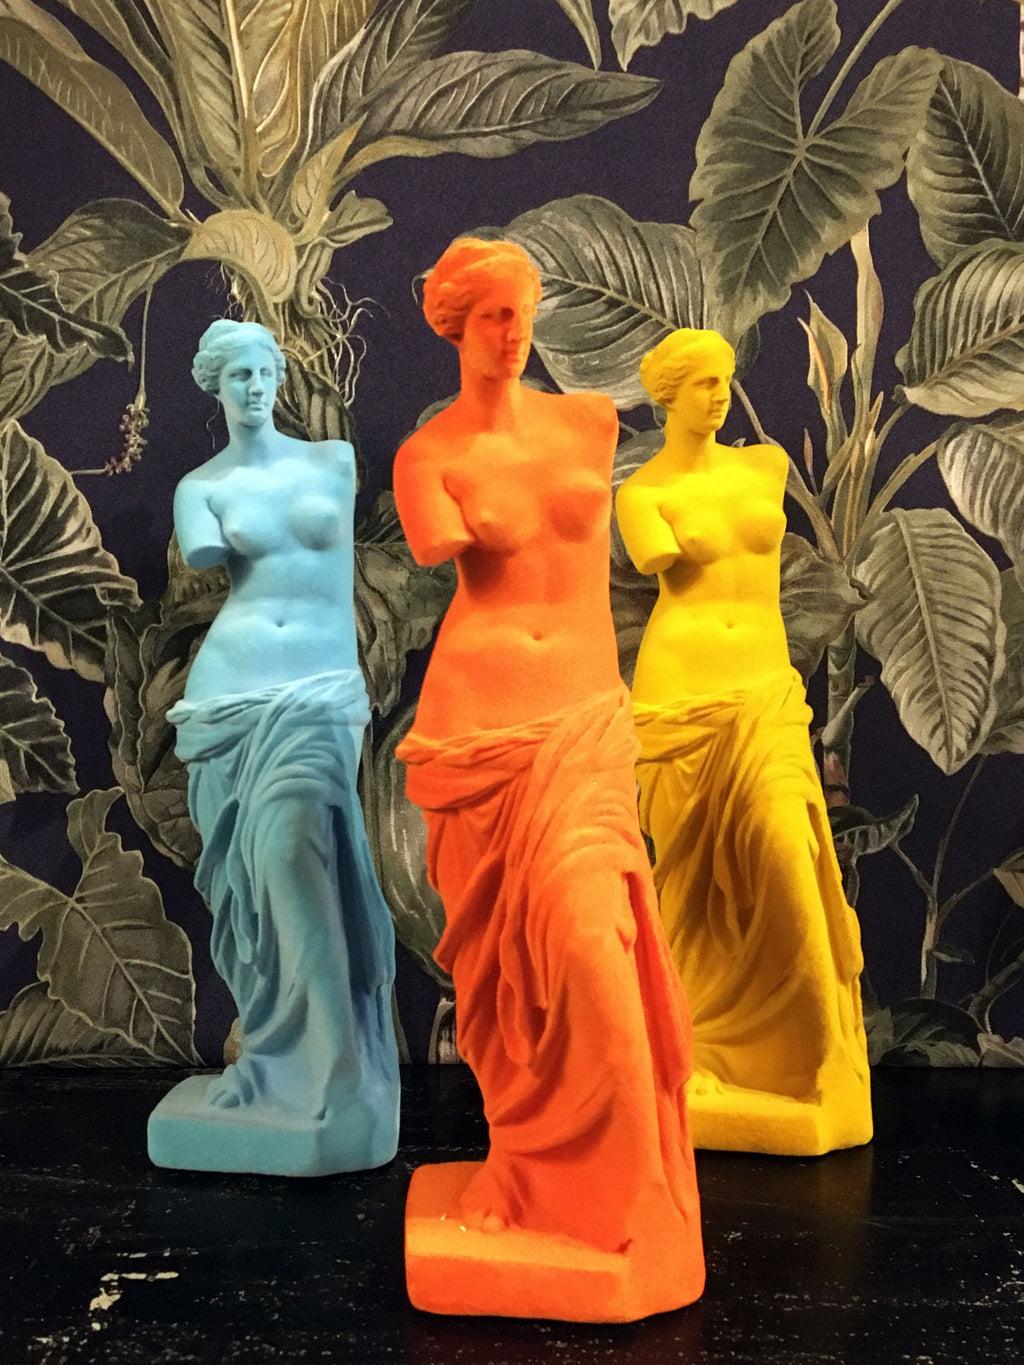 Venus de Milo Flocked Figure